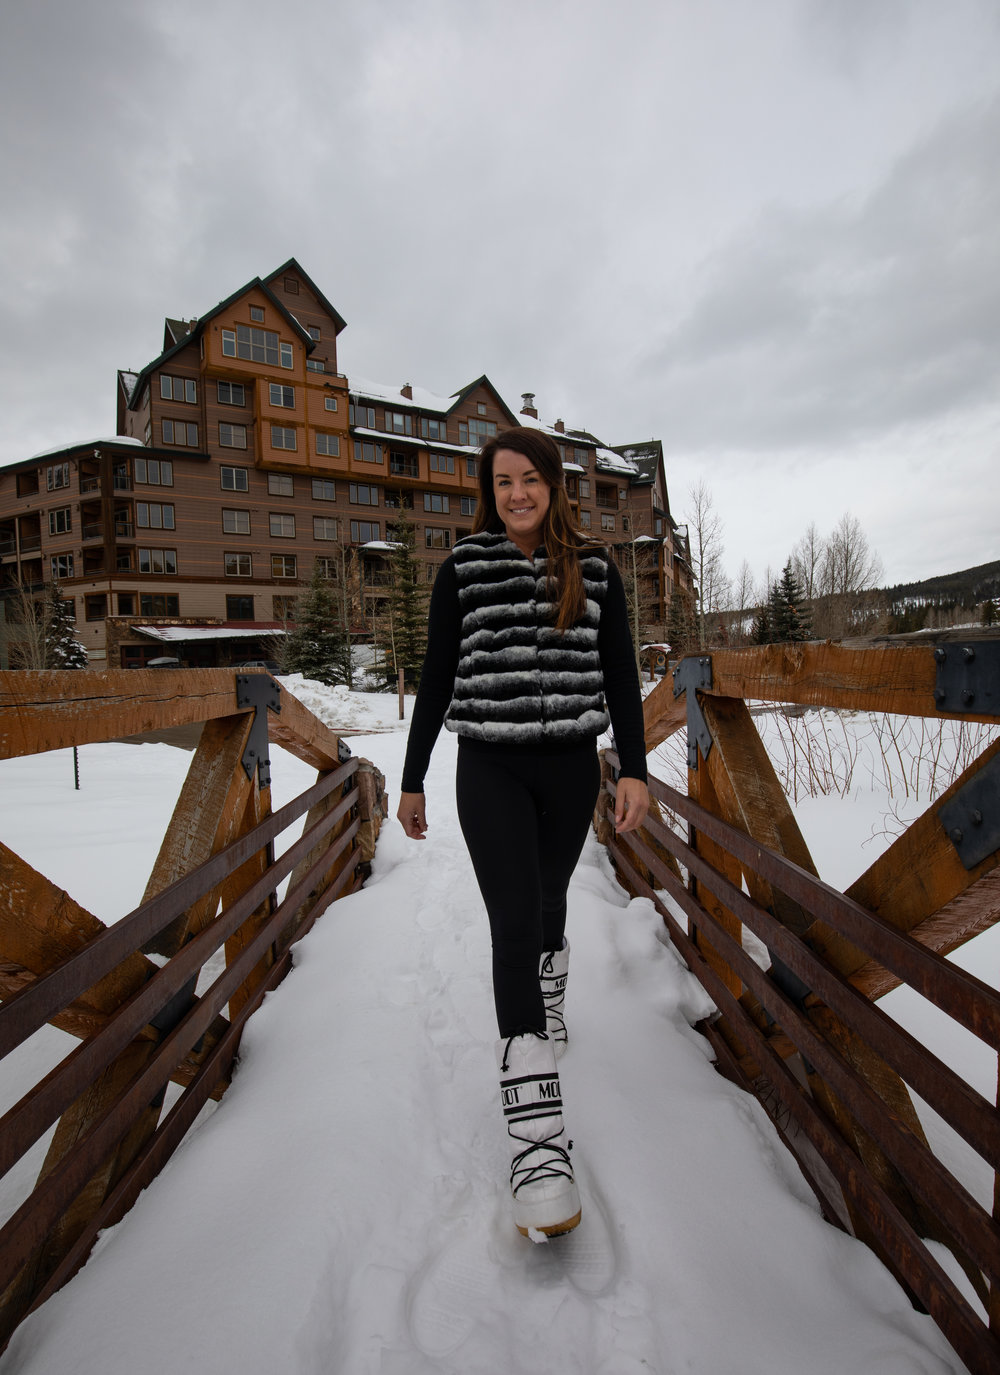 Zephyr Mountain Lodge, Winter Park Resort, Colorado